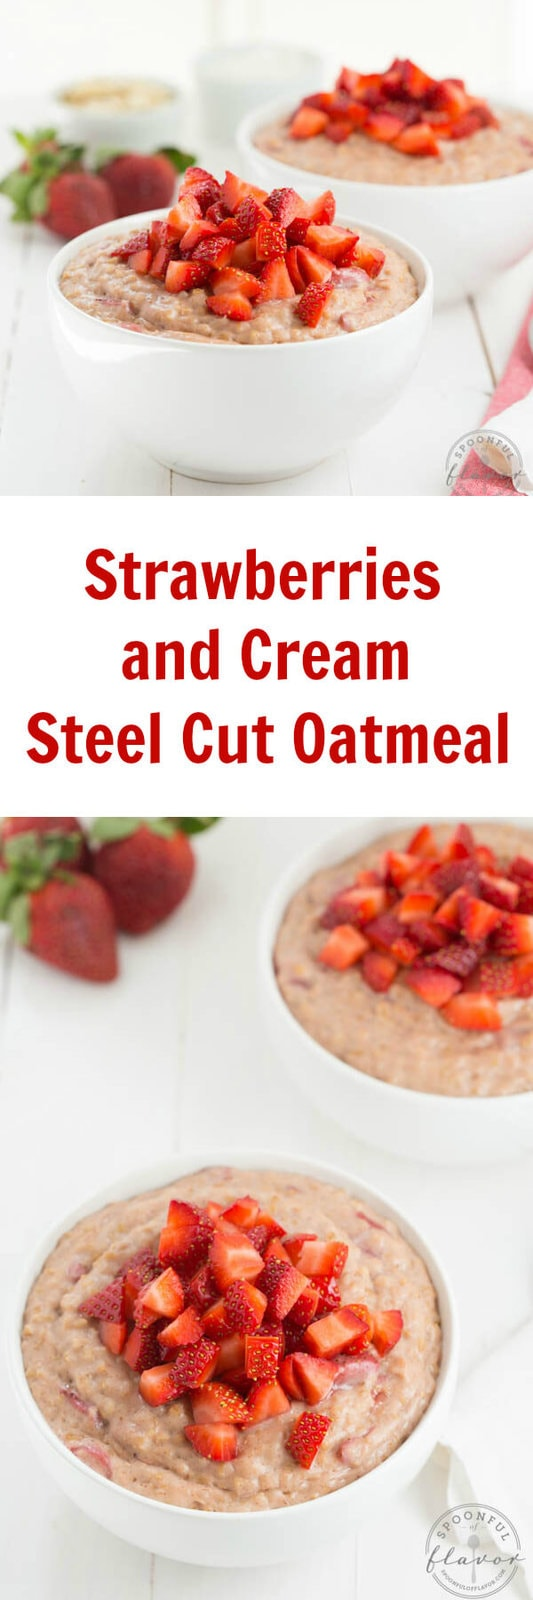 Strawberries and Cream Steel Cut Oatmeal is a big bowl of fresh strawberry flavor!